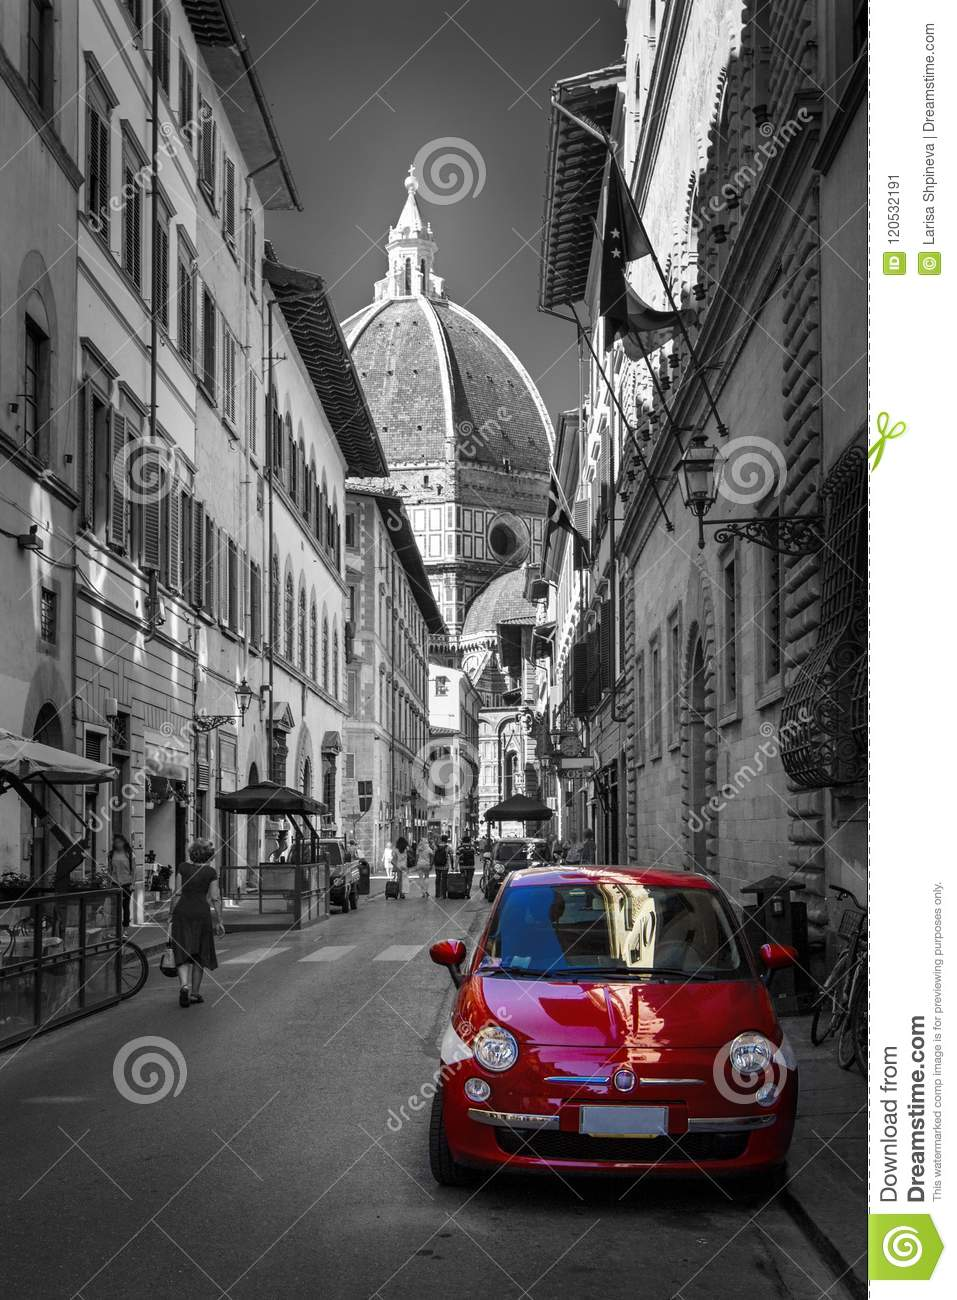 Famous historic red car in Florence street. Color in black and white. Old charming auto concept.